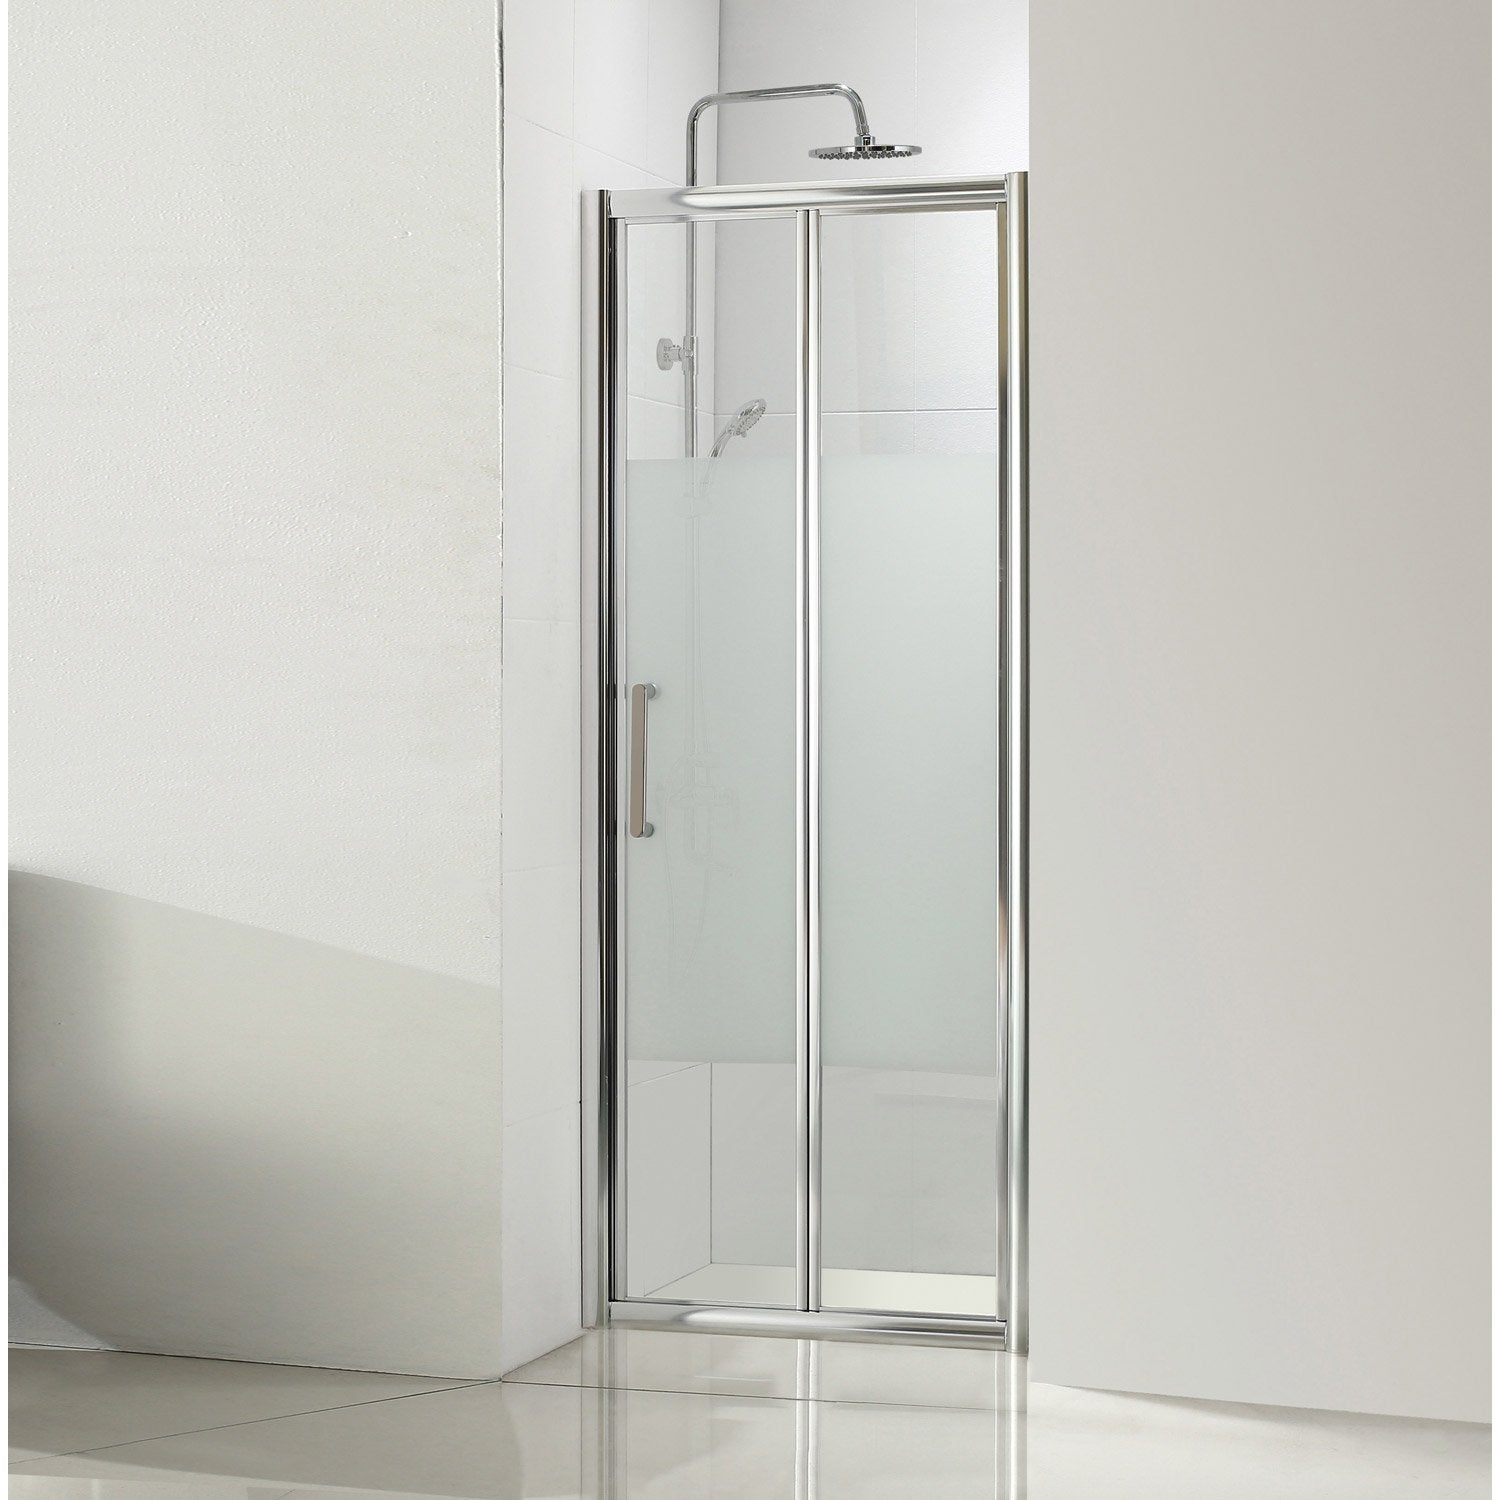 Porte de douche pliante for Leroy merlin porte douche